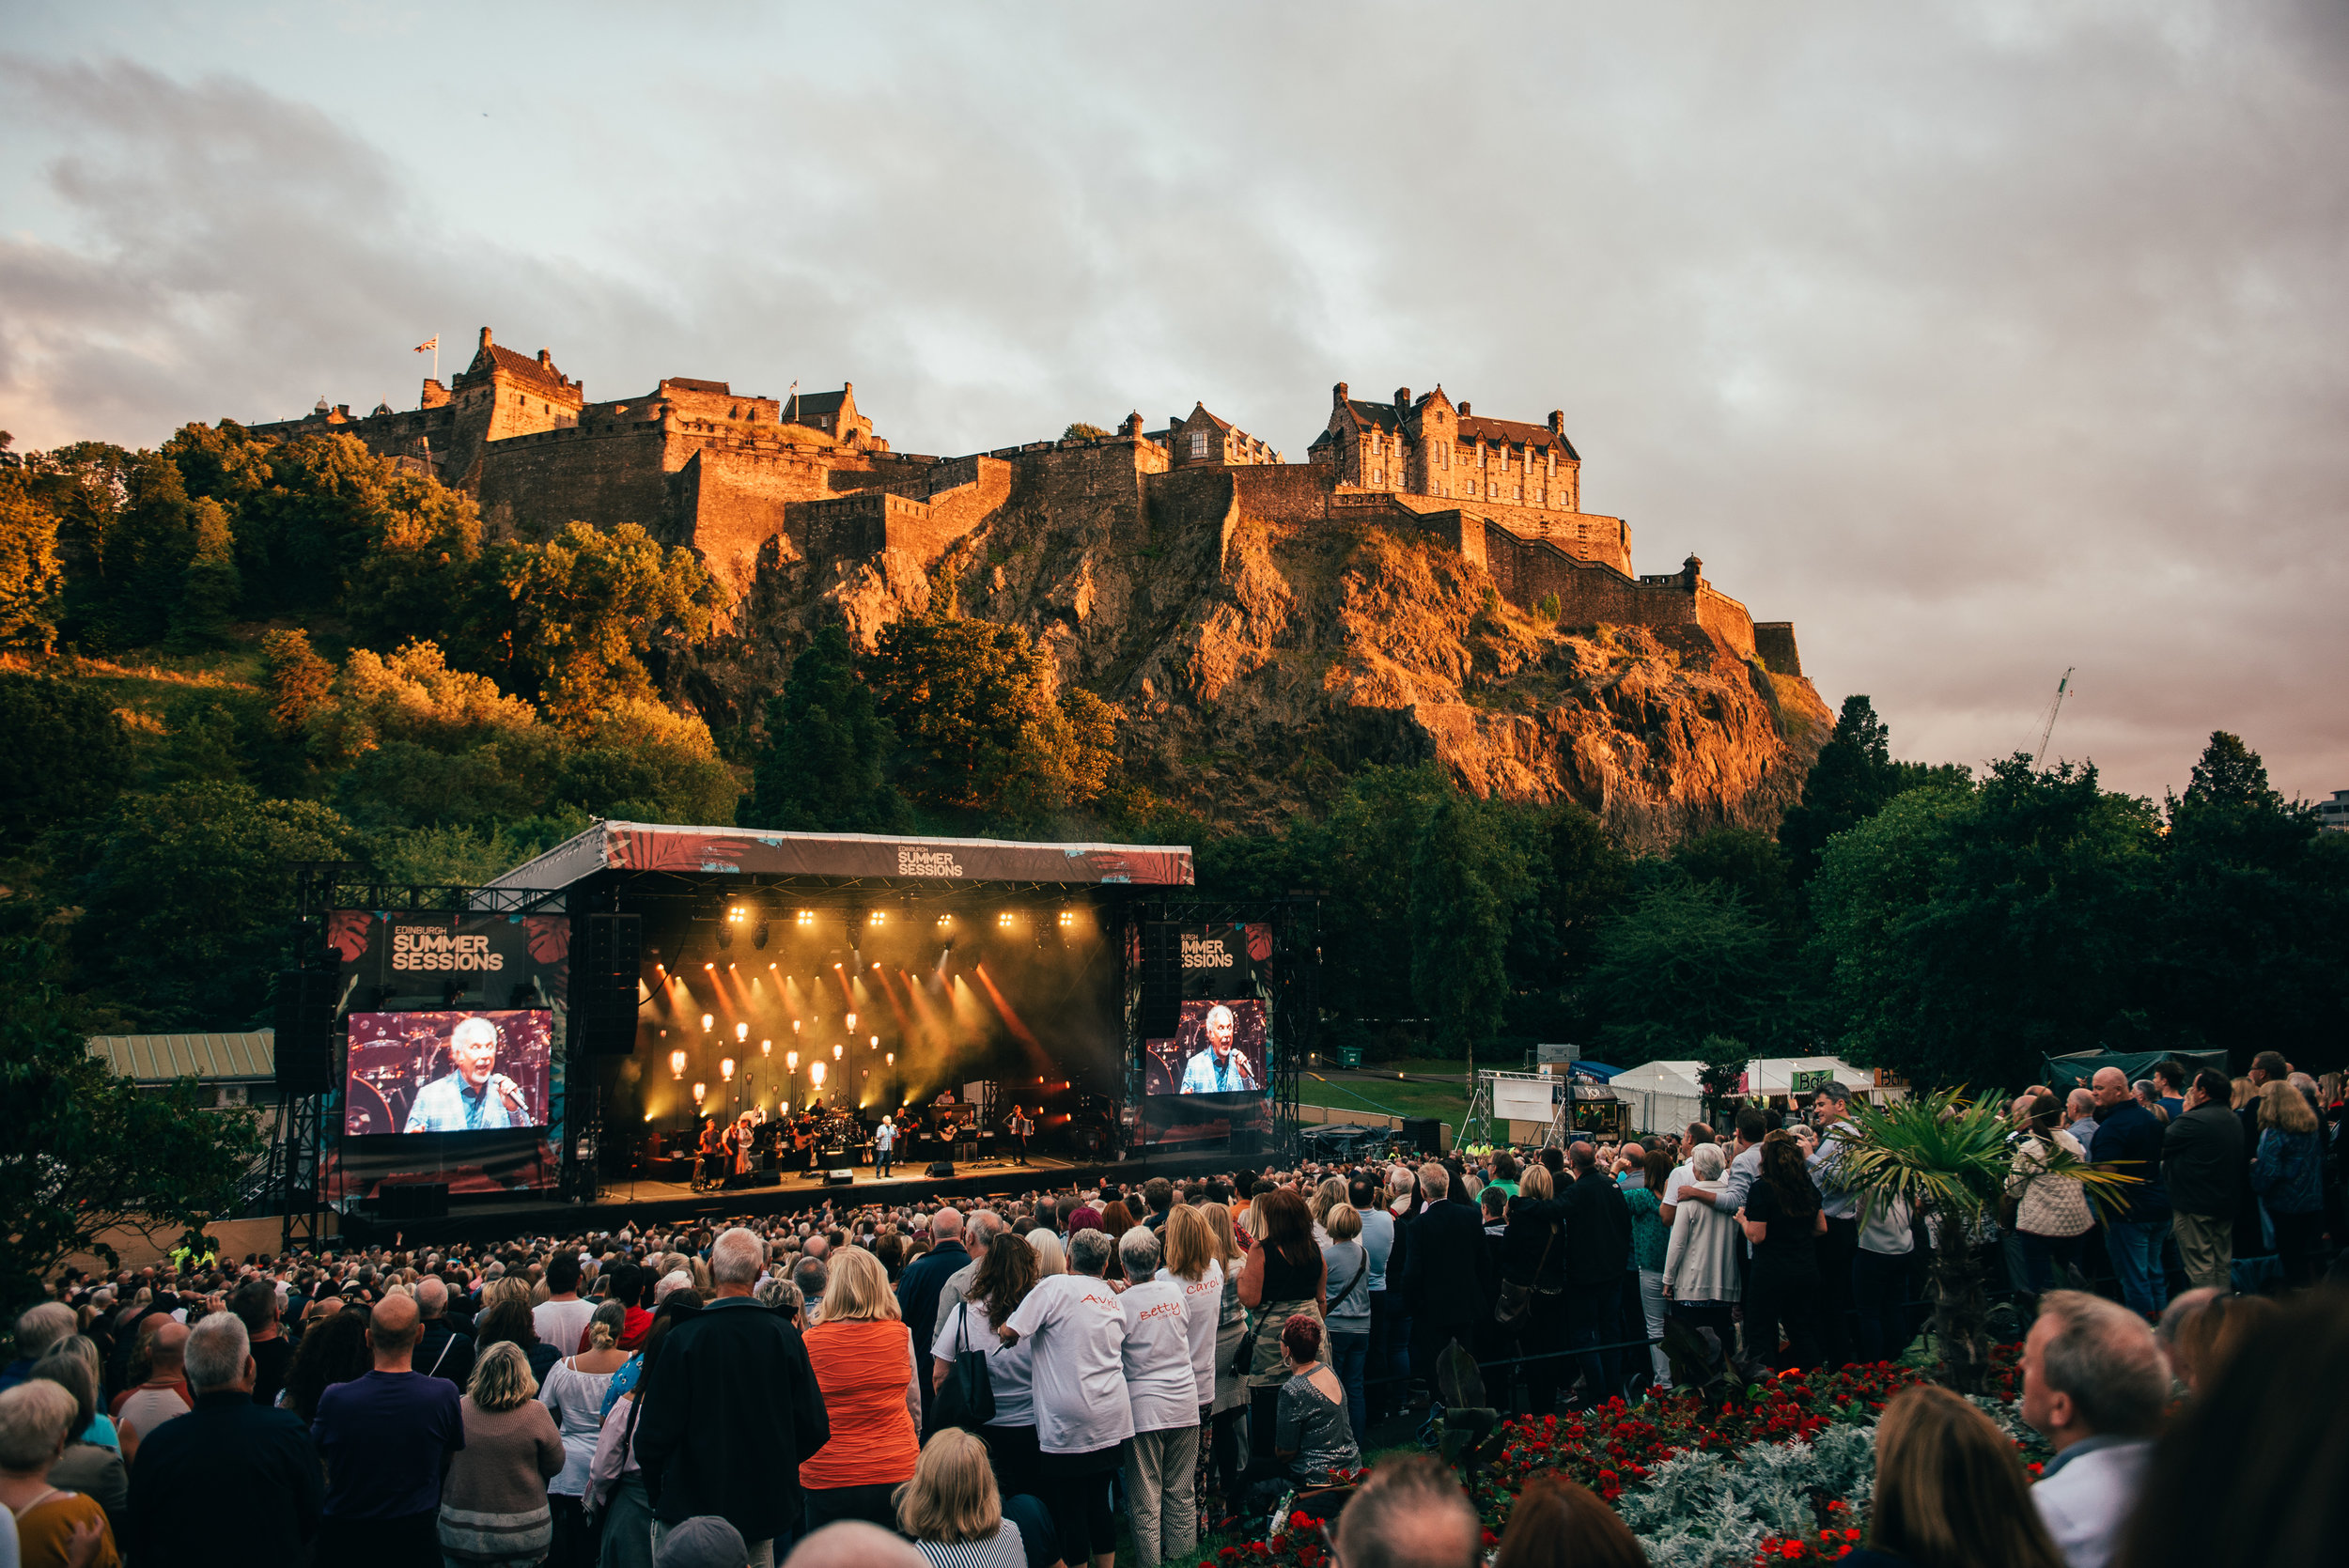 SIR TOM JONES KICKS OFF FIRST EVER EDINBURGH SUMMER SESSIONS CONCERT SERIES! - 06.08.2018  PICTURE BY: RYAN JOHNSTON